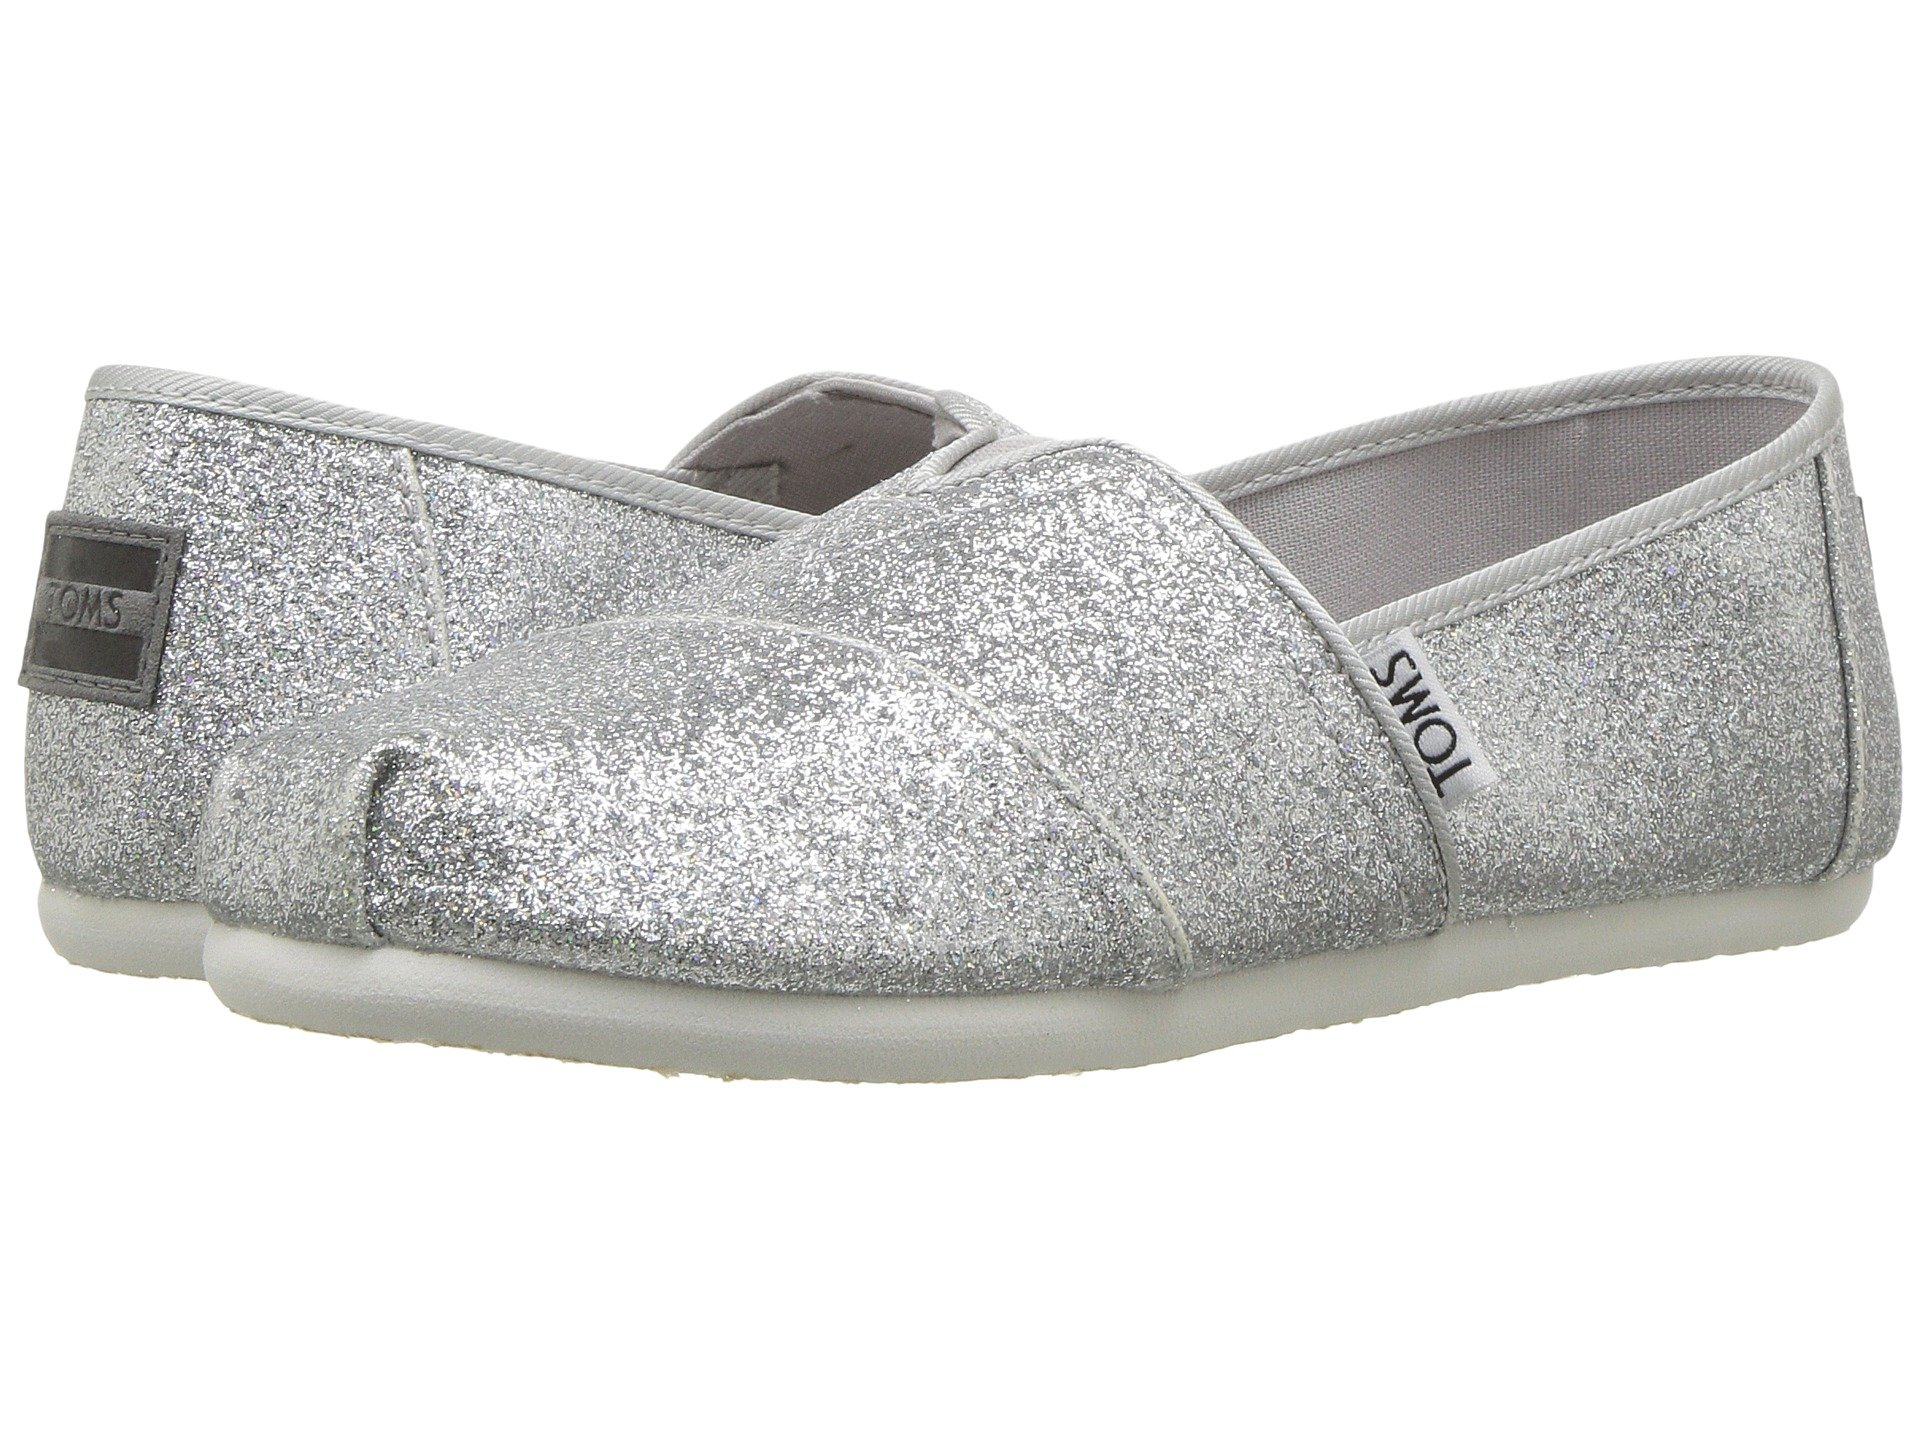 33dd6580fa4 The Classics are the original TOMS shoe that started the One for One  movement.Silver iridescent glimmer upperClassic Alpargata  designVeganDesigned for kids ...